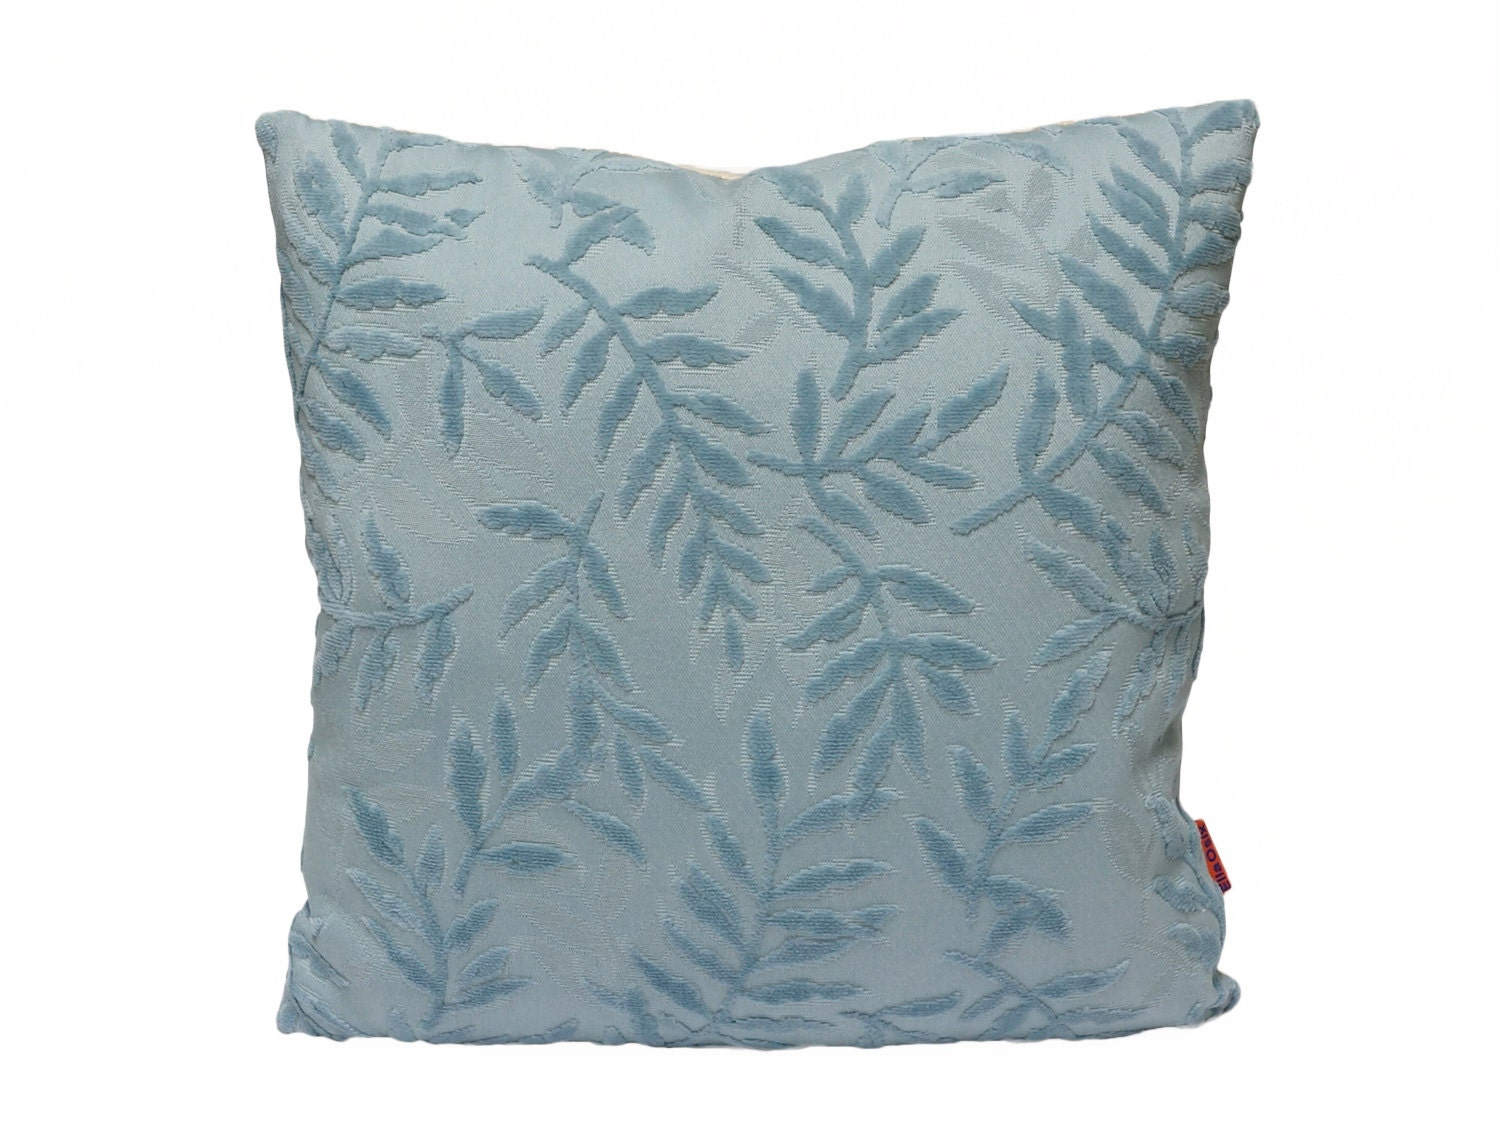 Luxury Blue Velvet Pillow throw pillow decorative pillow